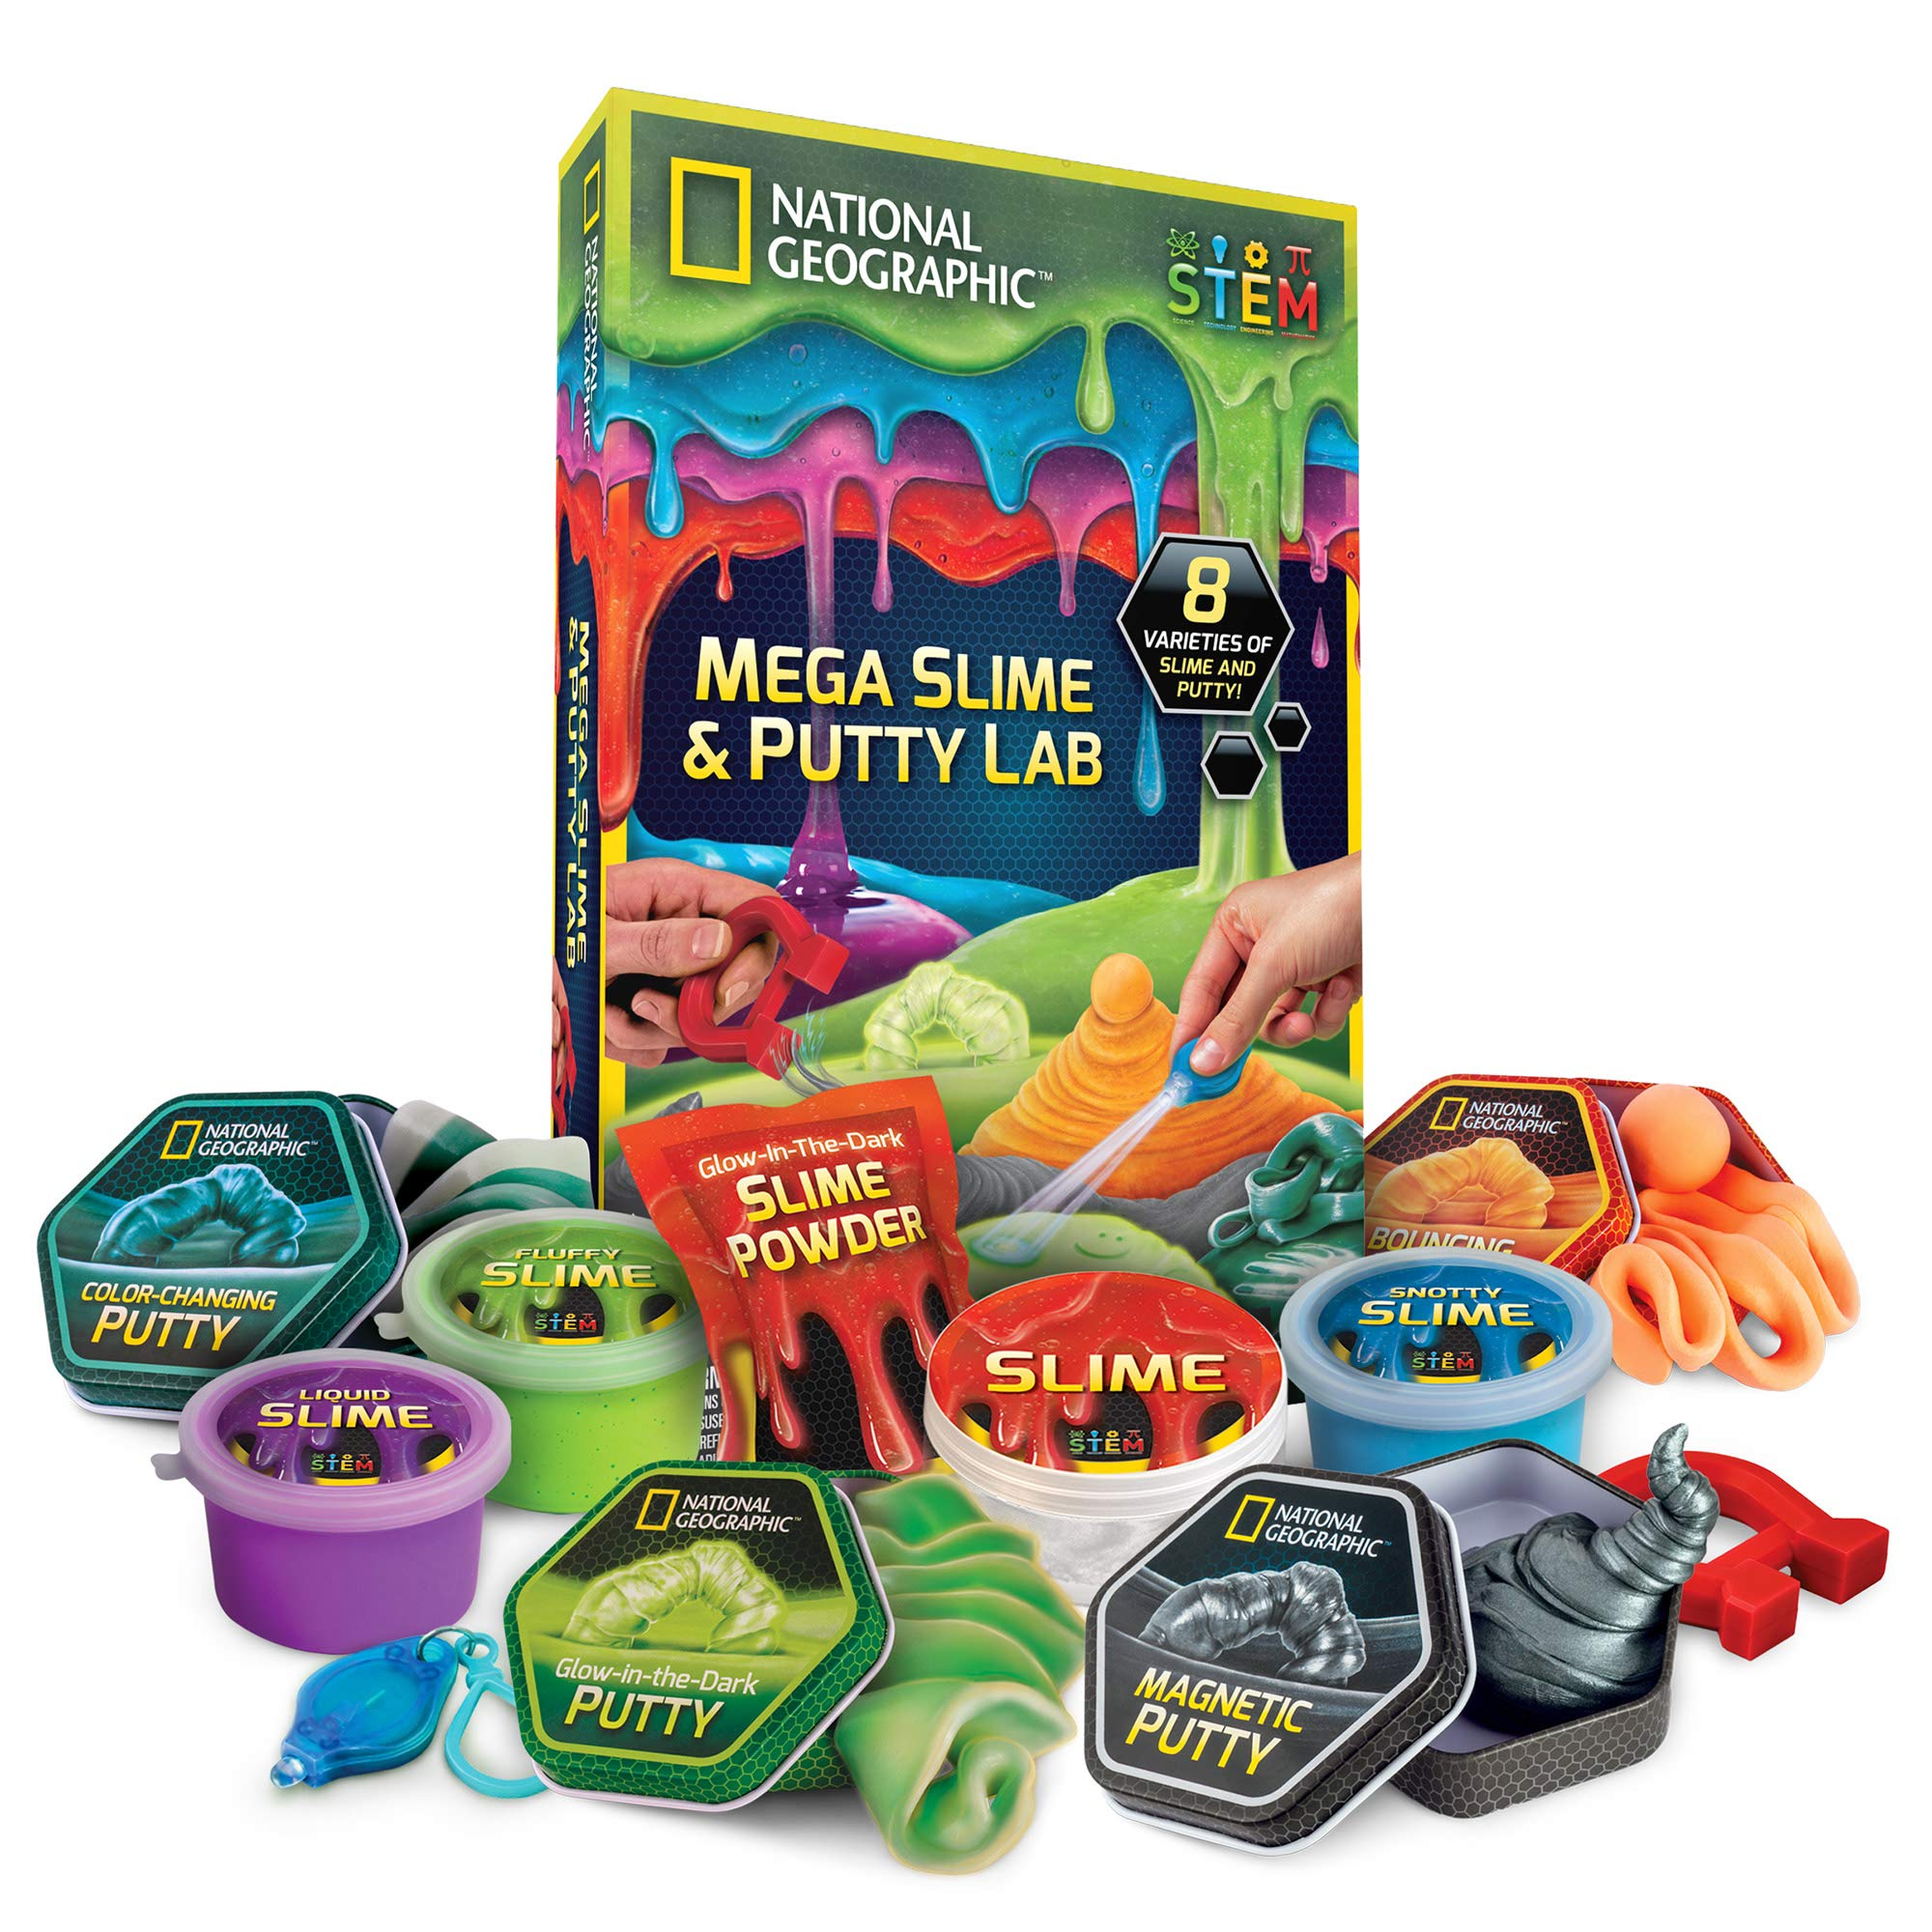 NATIONAL GEOGRAPHIC Mega Slime Kit & Putty Lab - 4 Types of Amazing Slime For Girls & Boys Plus 4 Types of Putty Including Magnetic Putty, Fluffy Slime & Glow-in-the-Dark Putty by NATIONAL GEOGRAPHIC